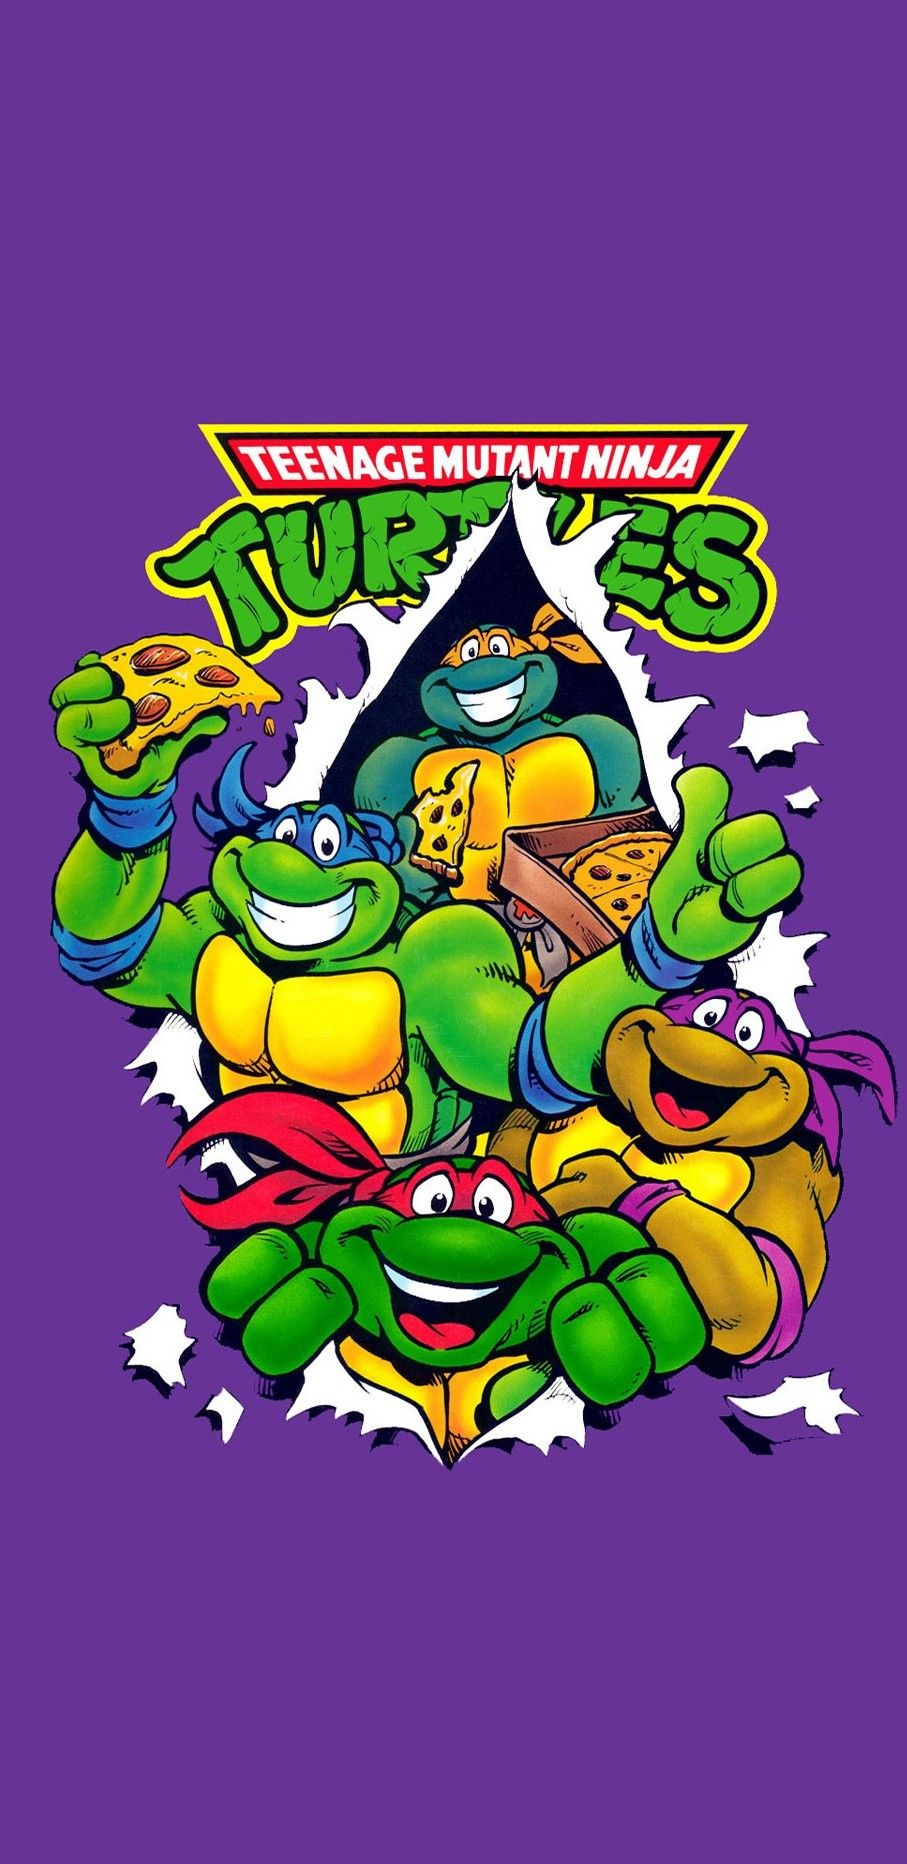 Teenage Mutant Ninja Turtles Wallpaper With Images Turtle Wallpaper Tmnt Ninja Turtles